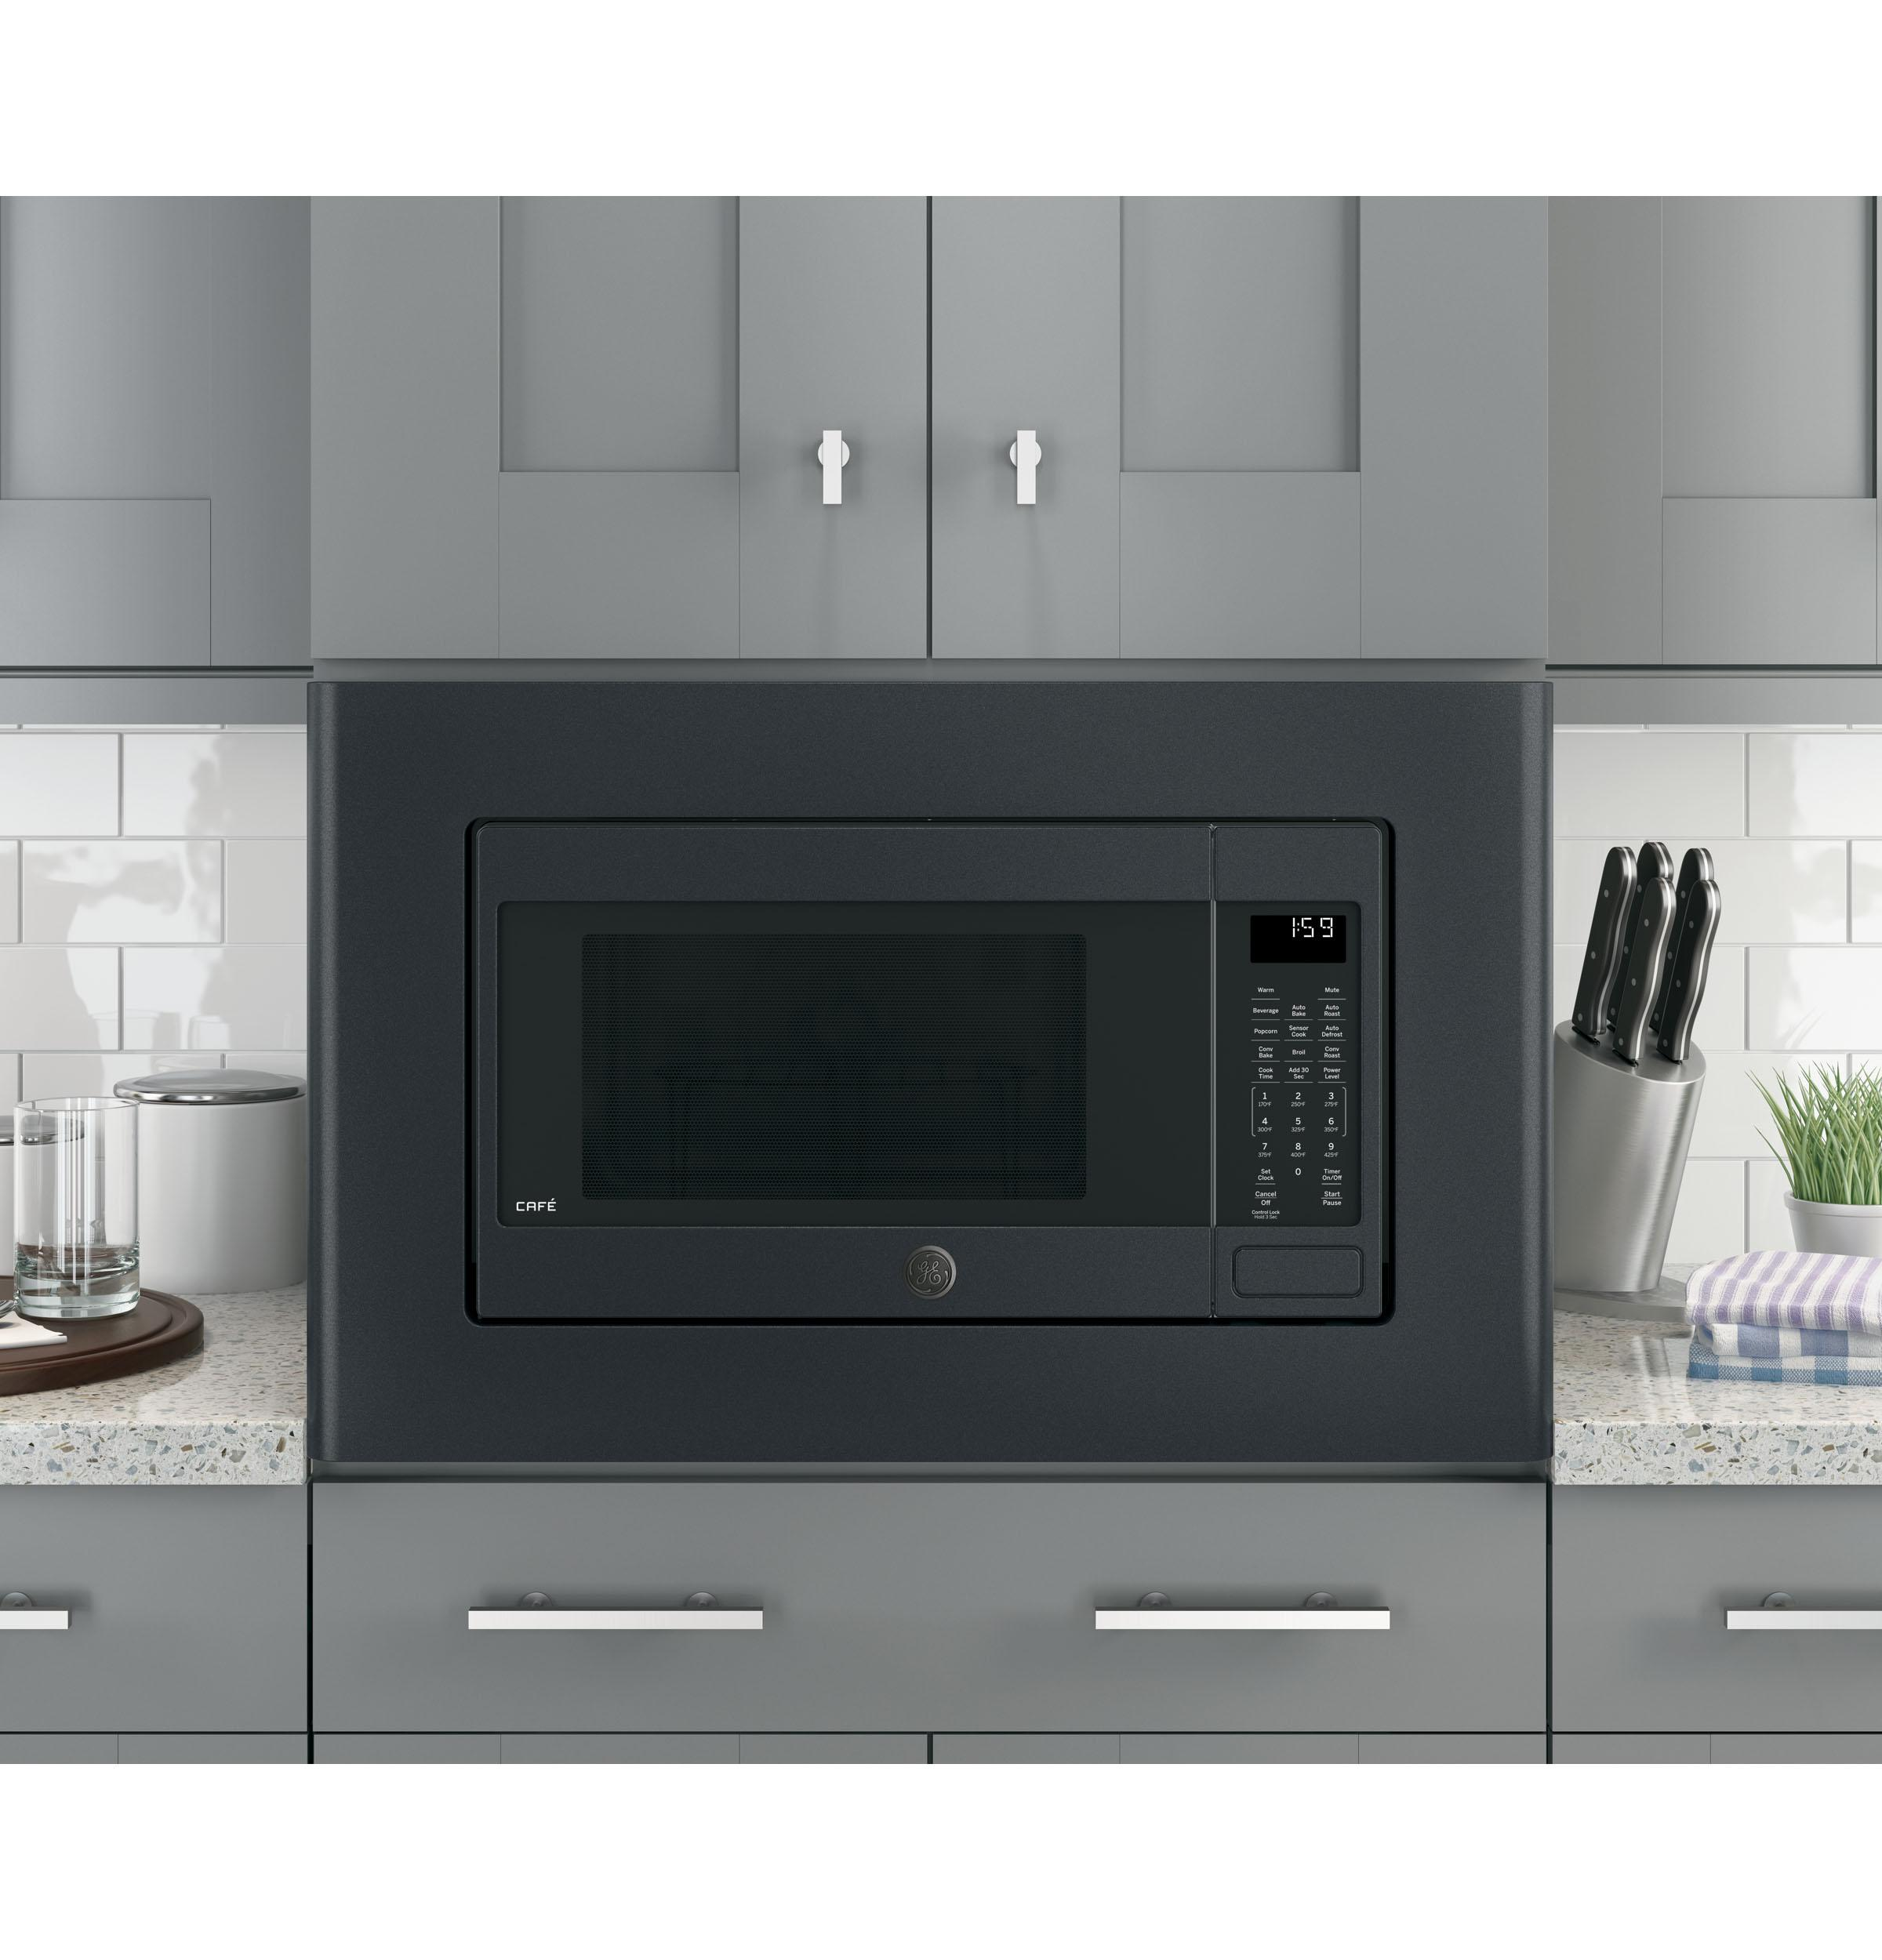 countertops reviews countertop ovens r sharp charming microwave oven convection combo black